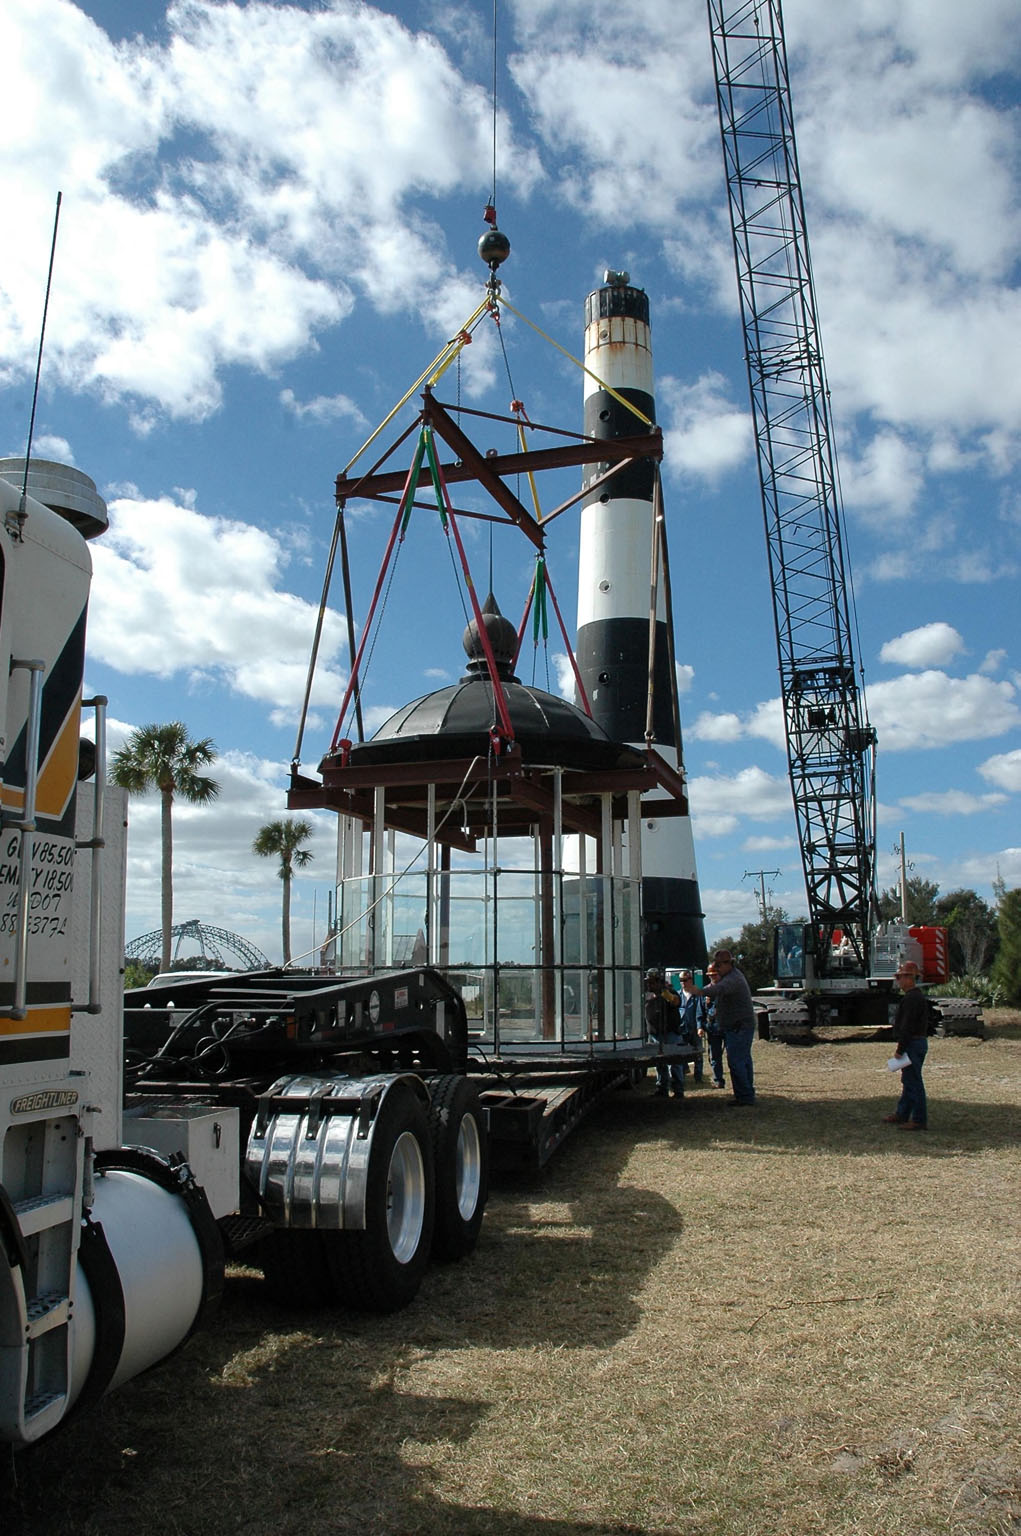 KENNEDY SPACE CENTER, FLA. - At Cape Canaveral Air Force Station, workers secure the lamp room detached from the Cape Canaveral Lighthouse onto a flat bed truck. Leaks in the roof allowed moisture to seep in. The lamp room will be moved to a facility near Cape Canaveral for repairs and renovation. The lamp room is being removed for repairs and refurbishment. In addition, the original brass roof will be restored and put back in place. The Cape Canaveral Lighthouse is the only operational lighthouse owned by the Air Force. It was first erected in 1868 near the edge of the Atlantic Ocean. Photo credit: NASA/Jack Pfaller